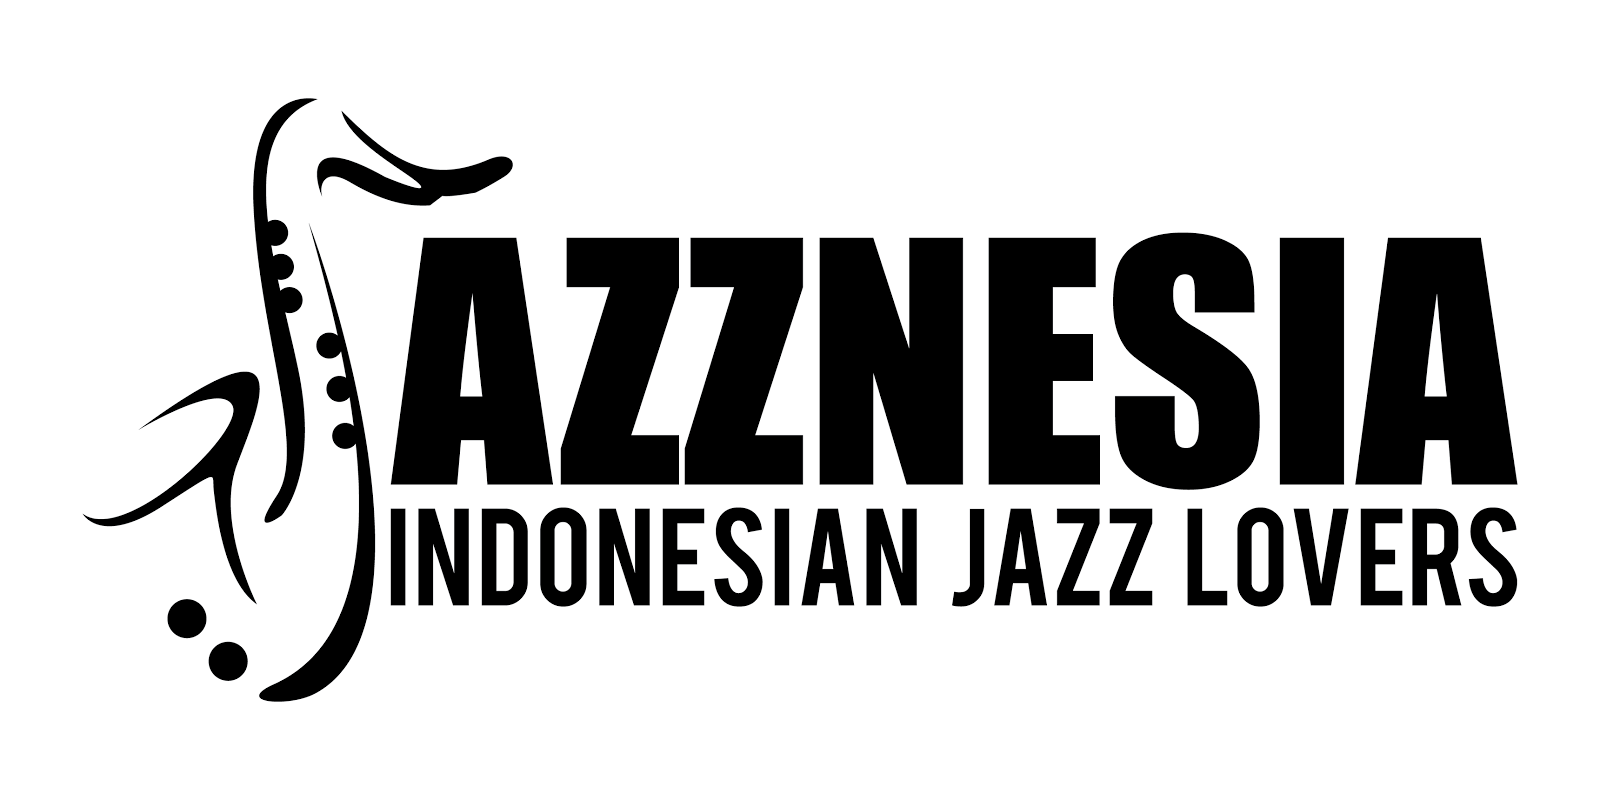 Jazznesia - Jazz Indonesia